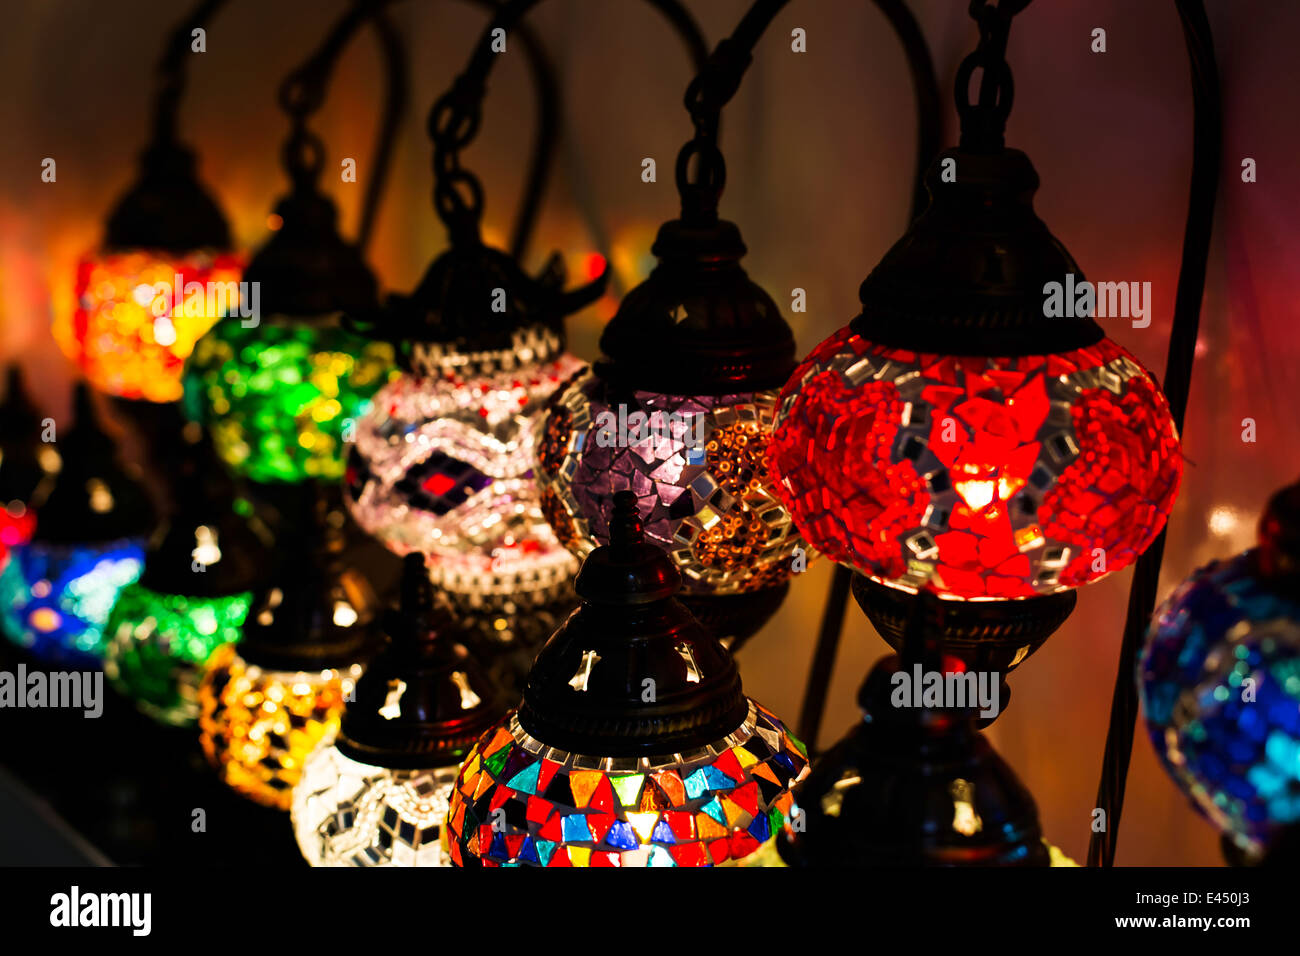 Lantern shop at the Grand Bazar - Istanbul - Stock Image